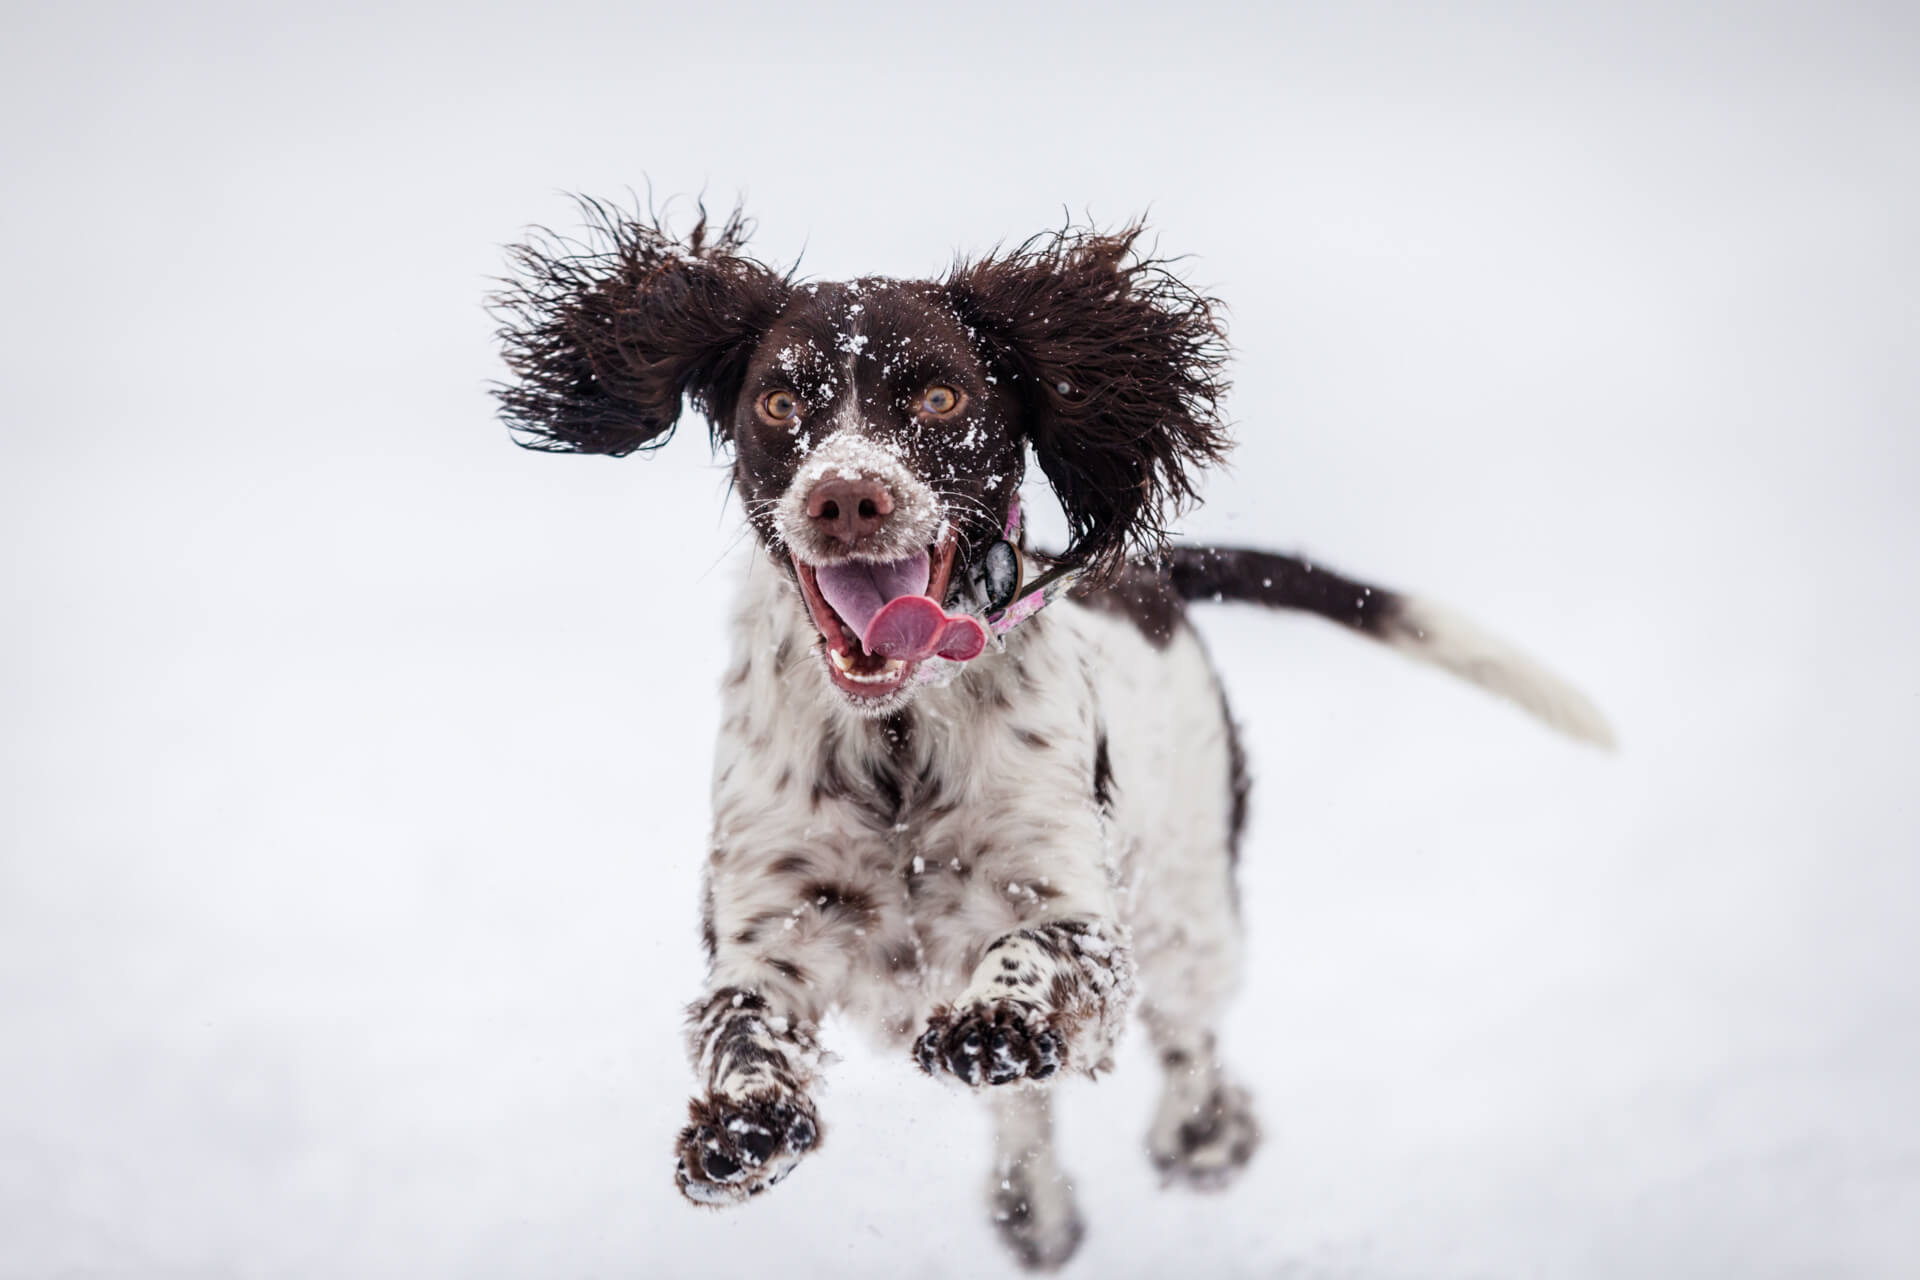 spaniel leaping in the snow